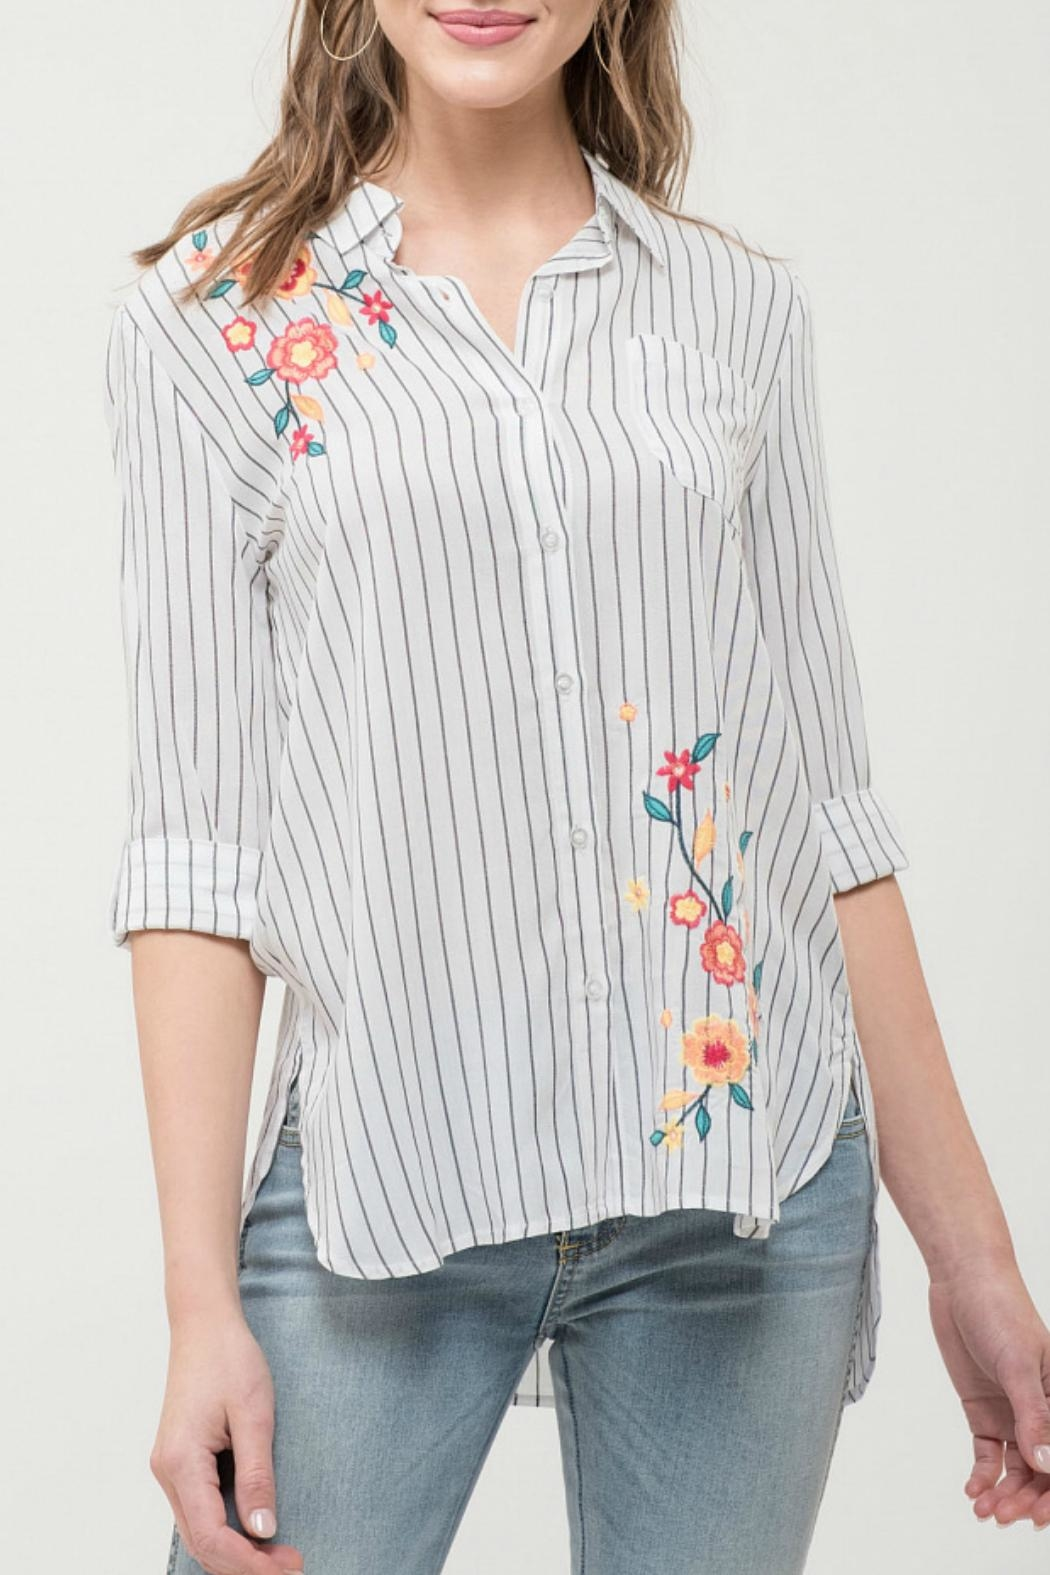 Blu Pepper Collared Embroidered Top - Main Image